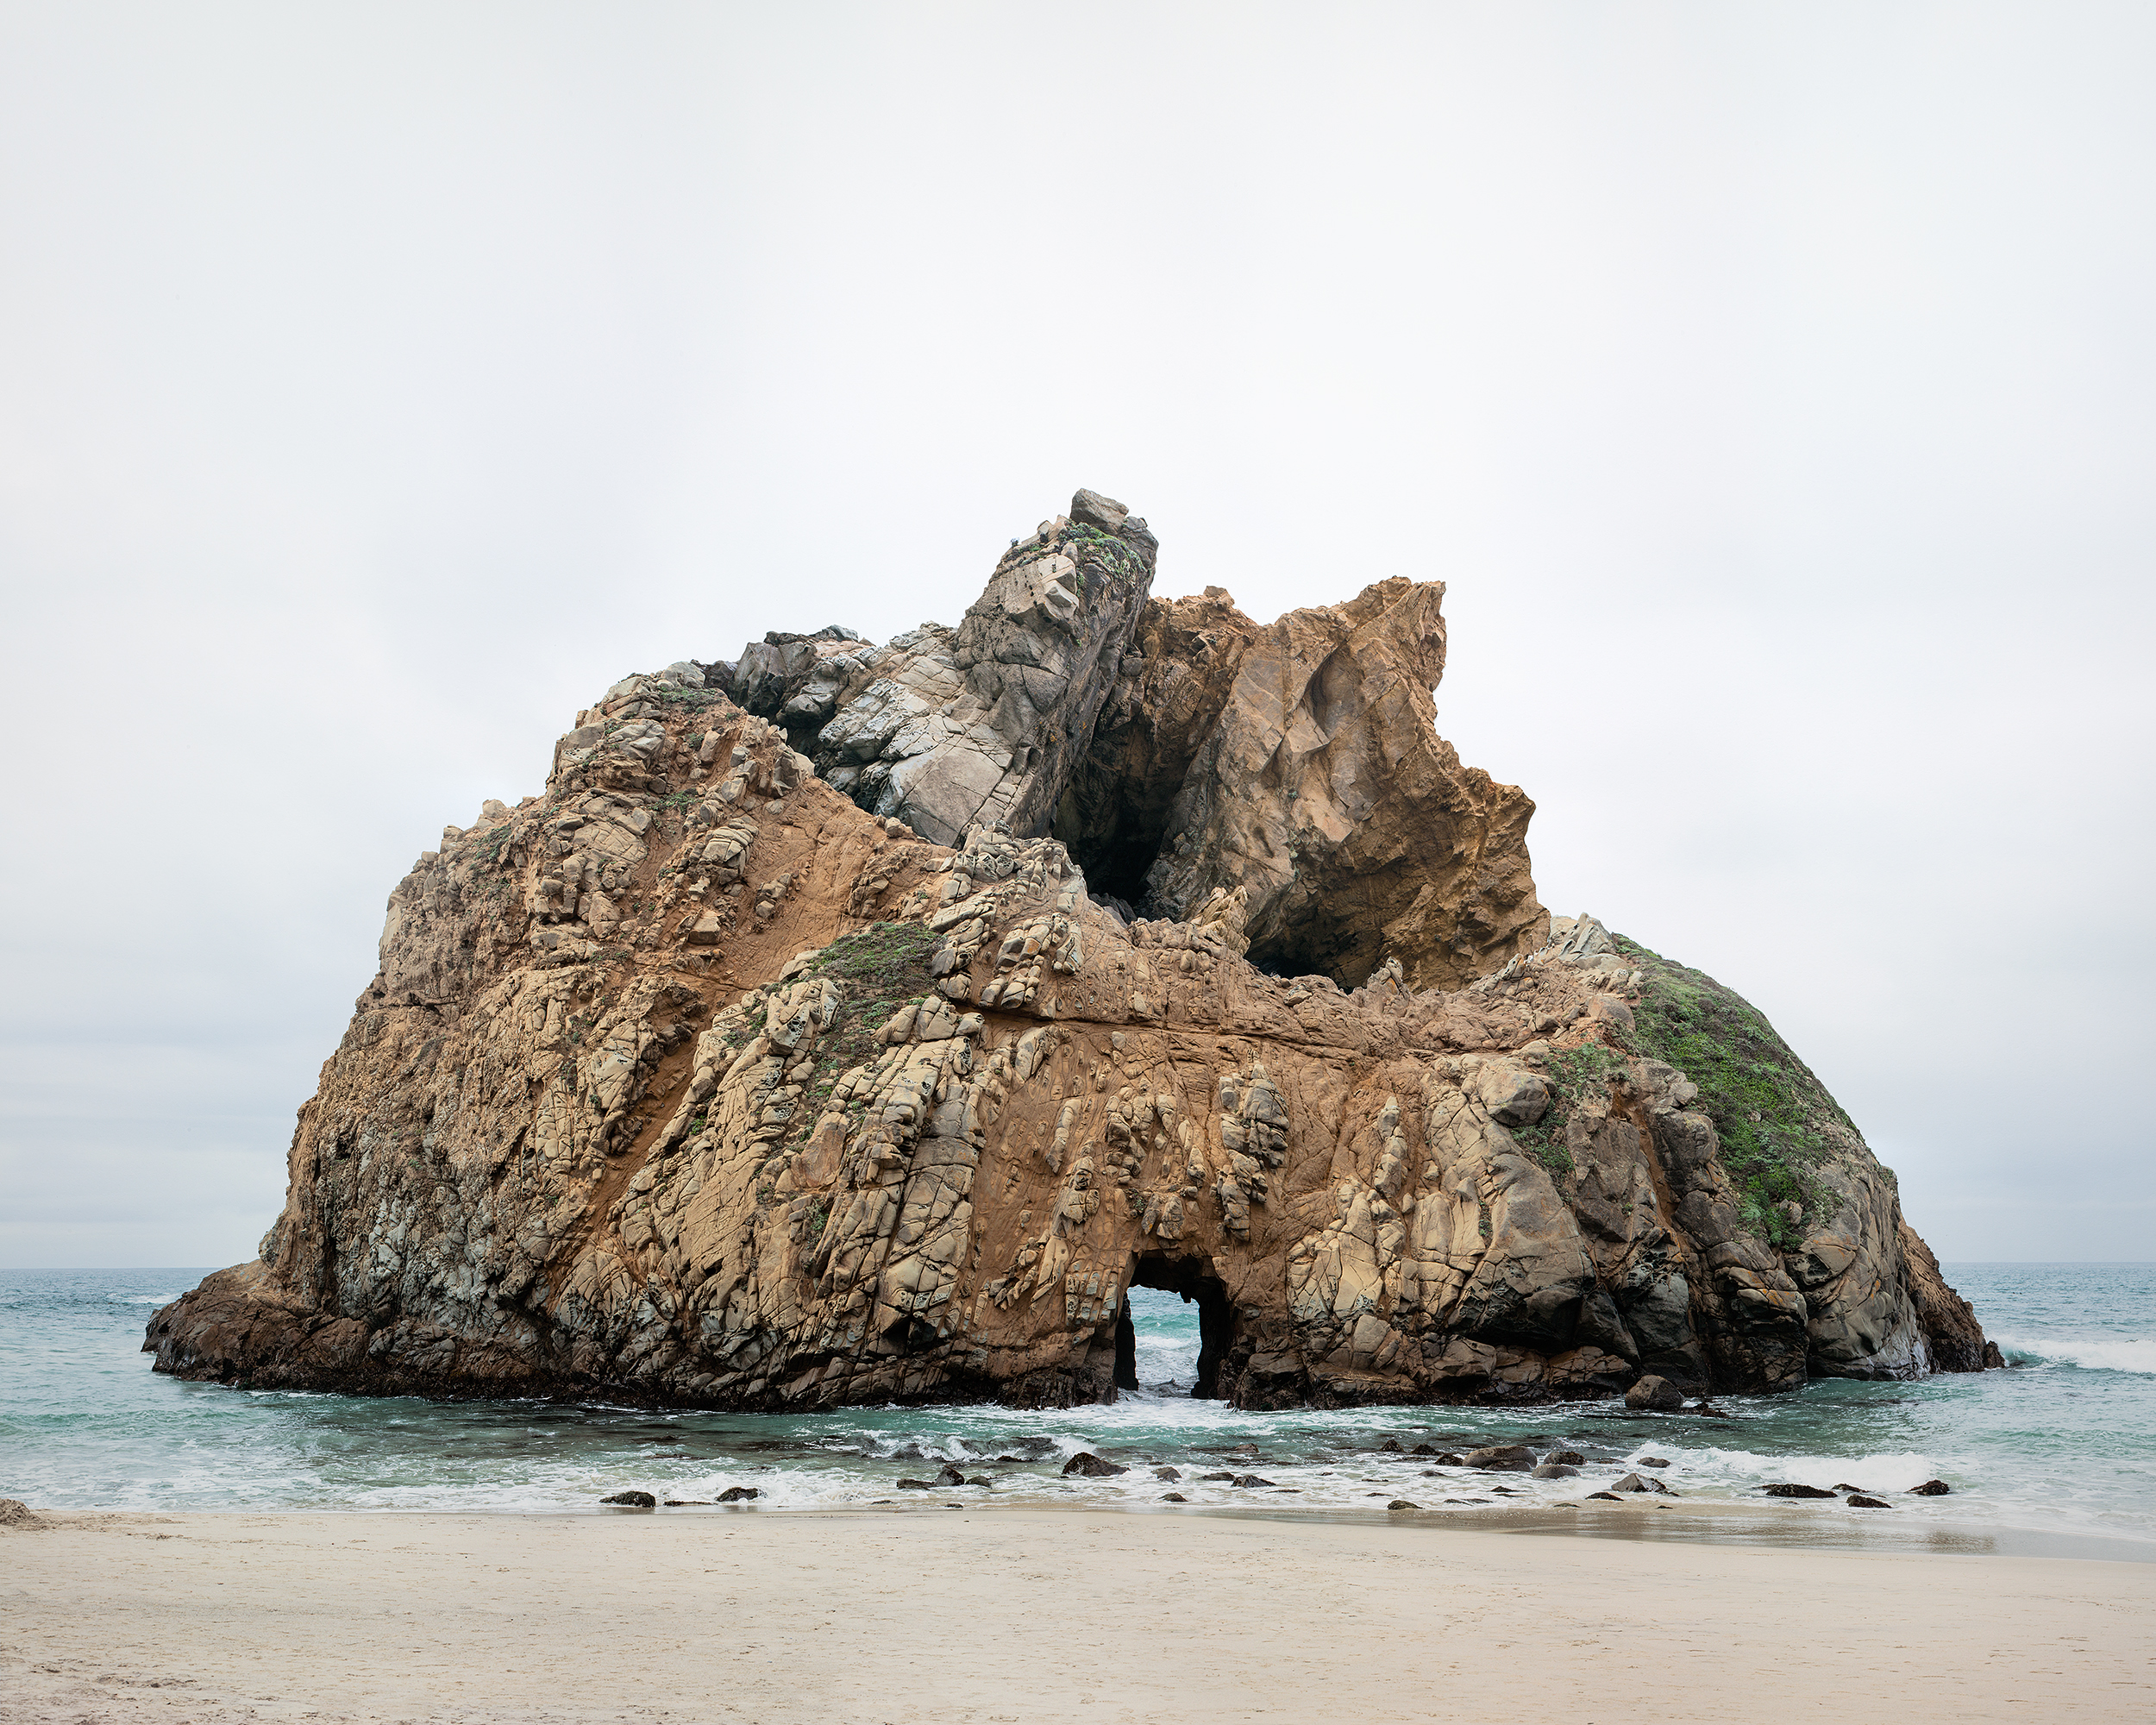 Laura Plageman,  Response to Print of Pfeiffer Beach, California , 2014  Digital pigment print, 40 x 50 in, edition of 4; 20 x 25 in, edition of 5   Inquire